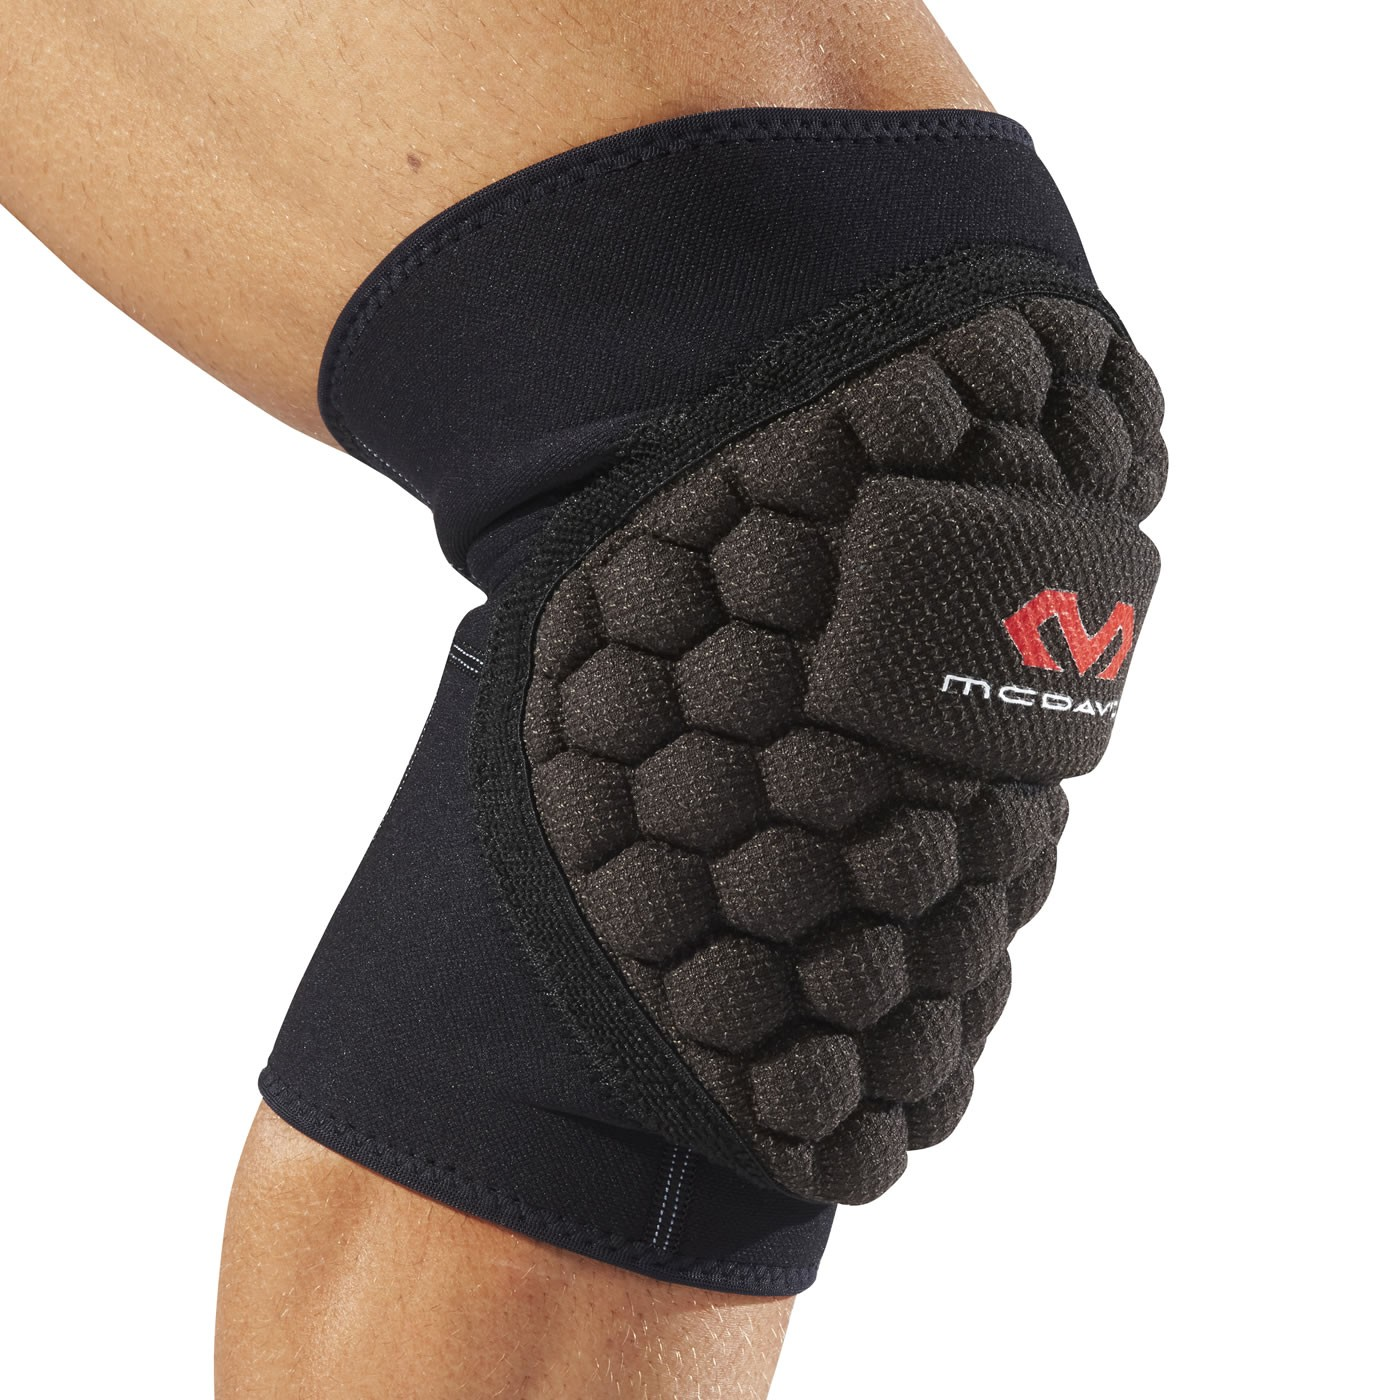 MCDAVID Pro Indoor/Handball Knee Pad 670R